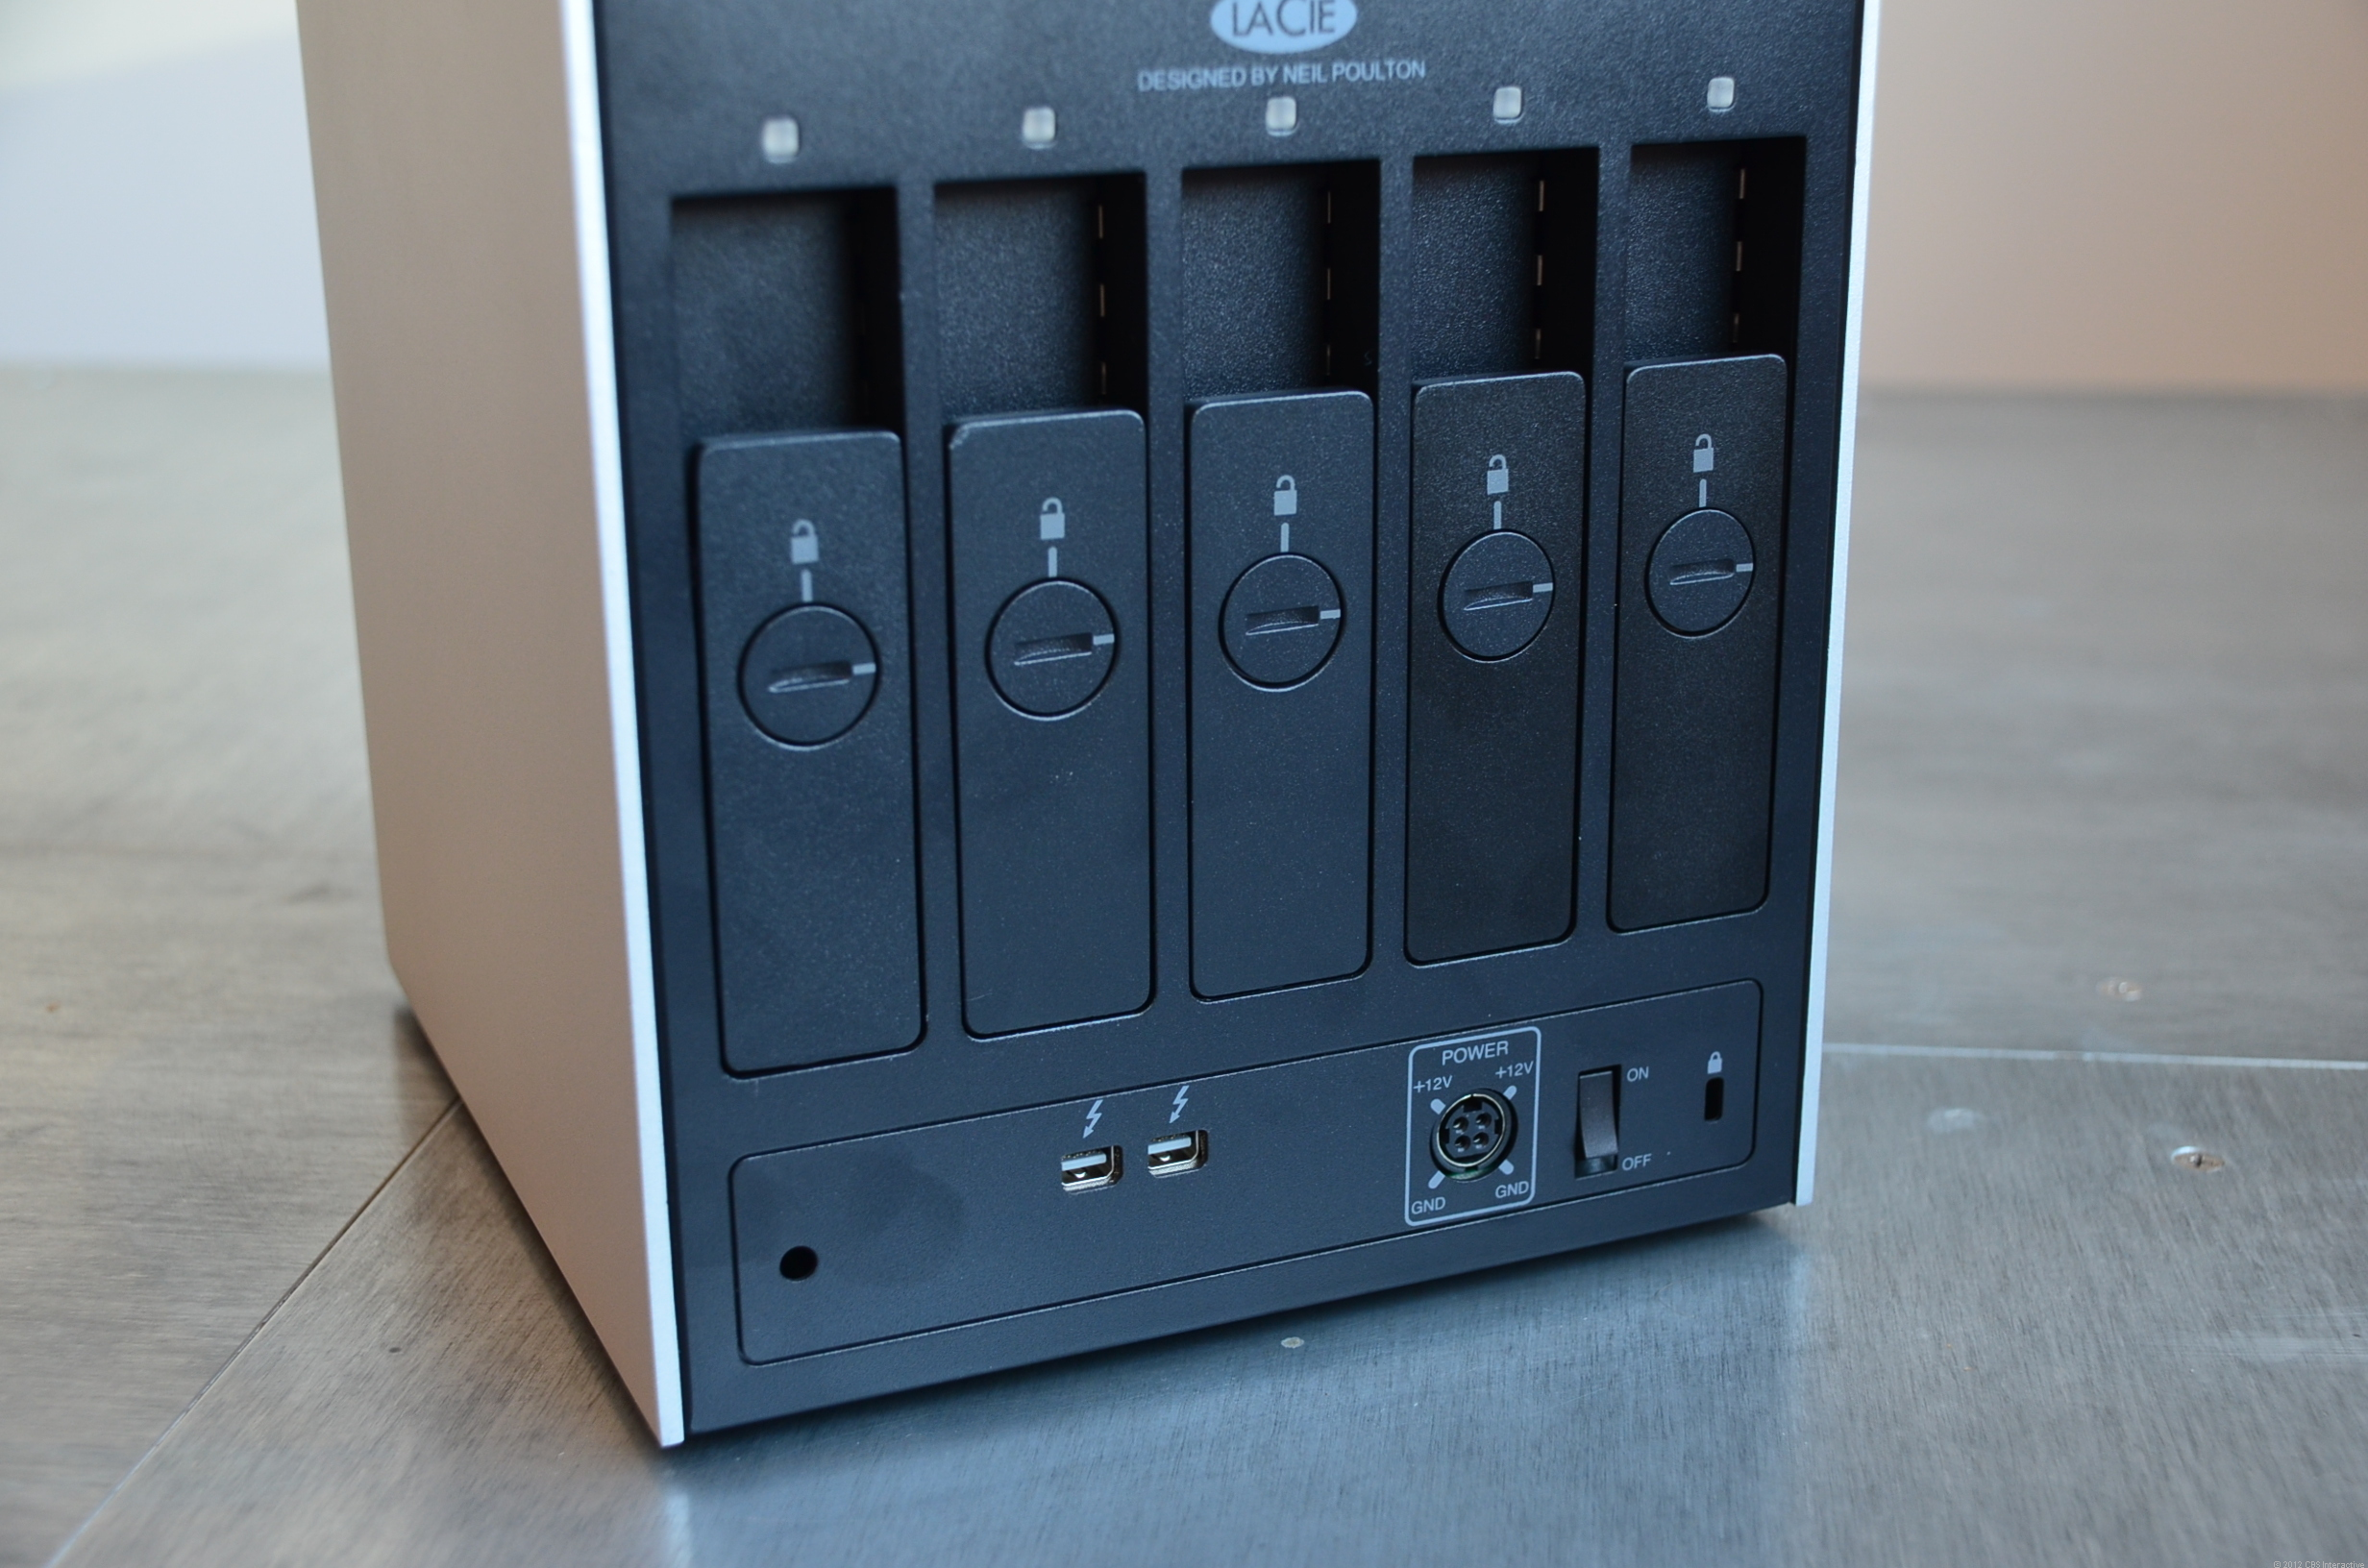 The 5big Thunderbolt drive bays are easily accessible from its back. Note the two drive bays that are darker than the other three, suggesting a dual RAID 0 and RAID 1 setup.